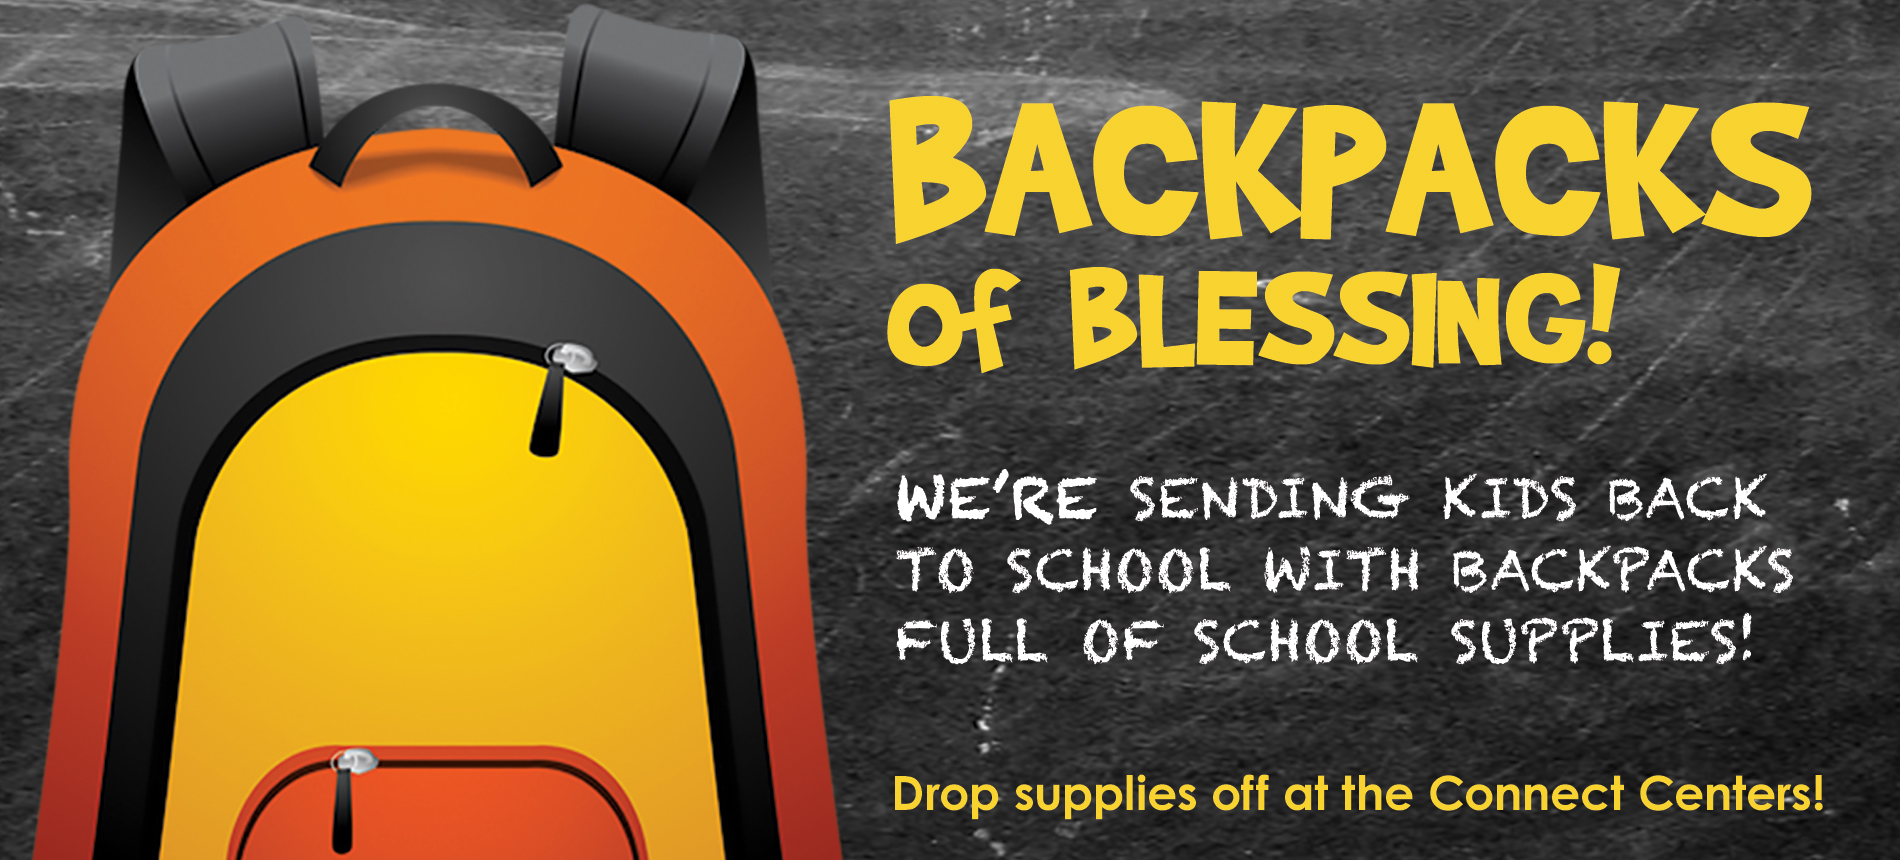 WHCE | Backpacks of Blessing